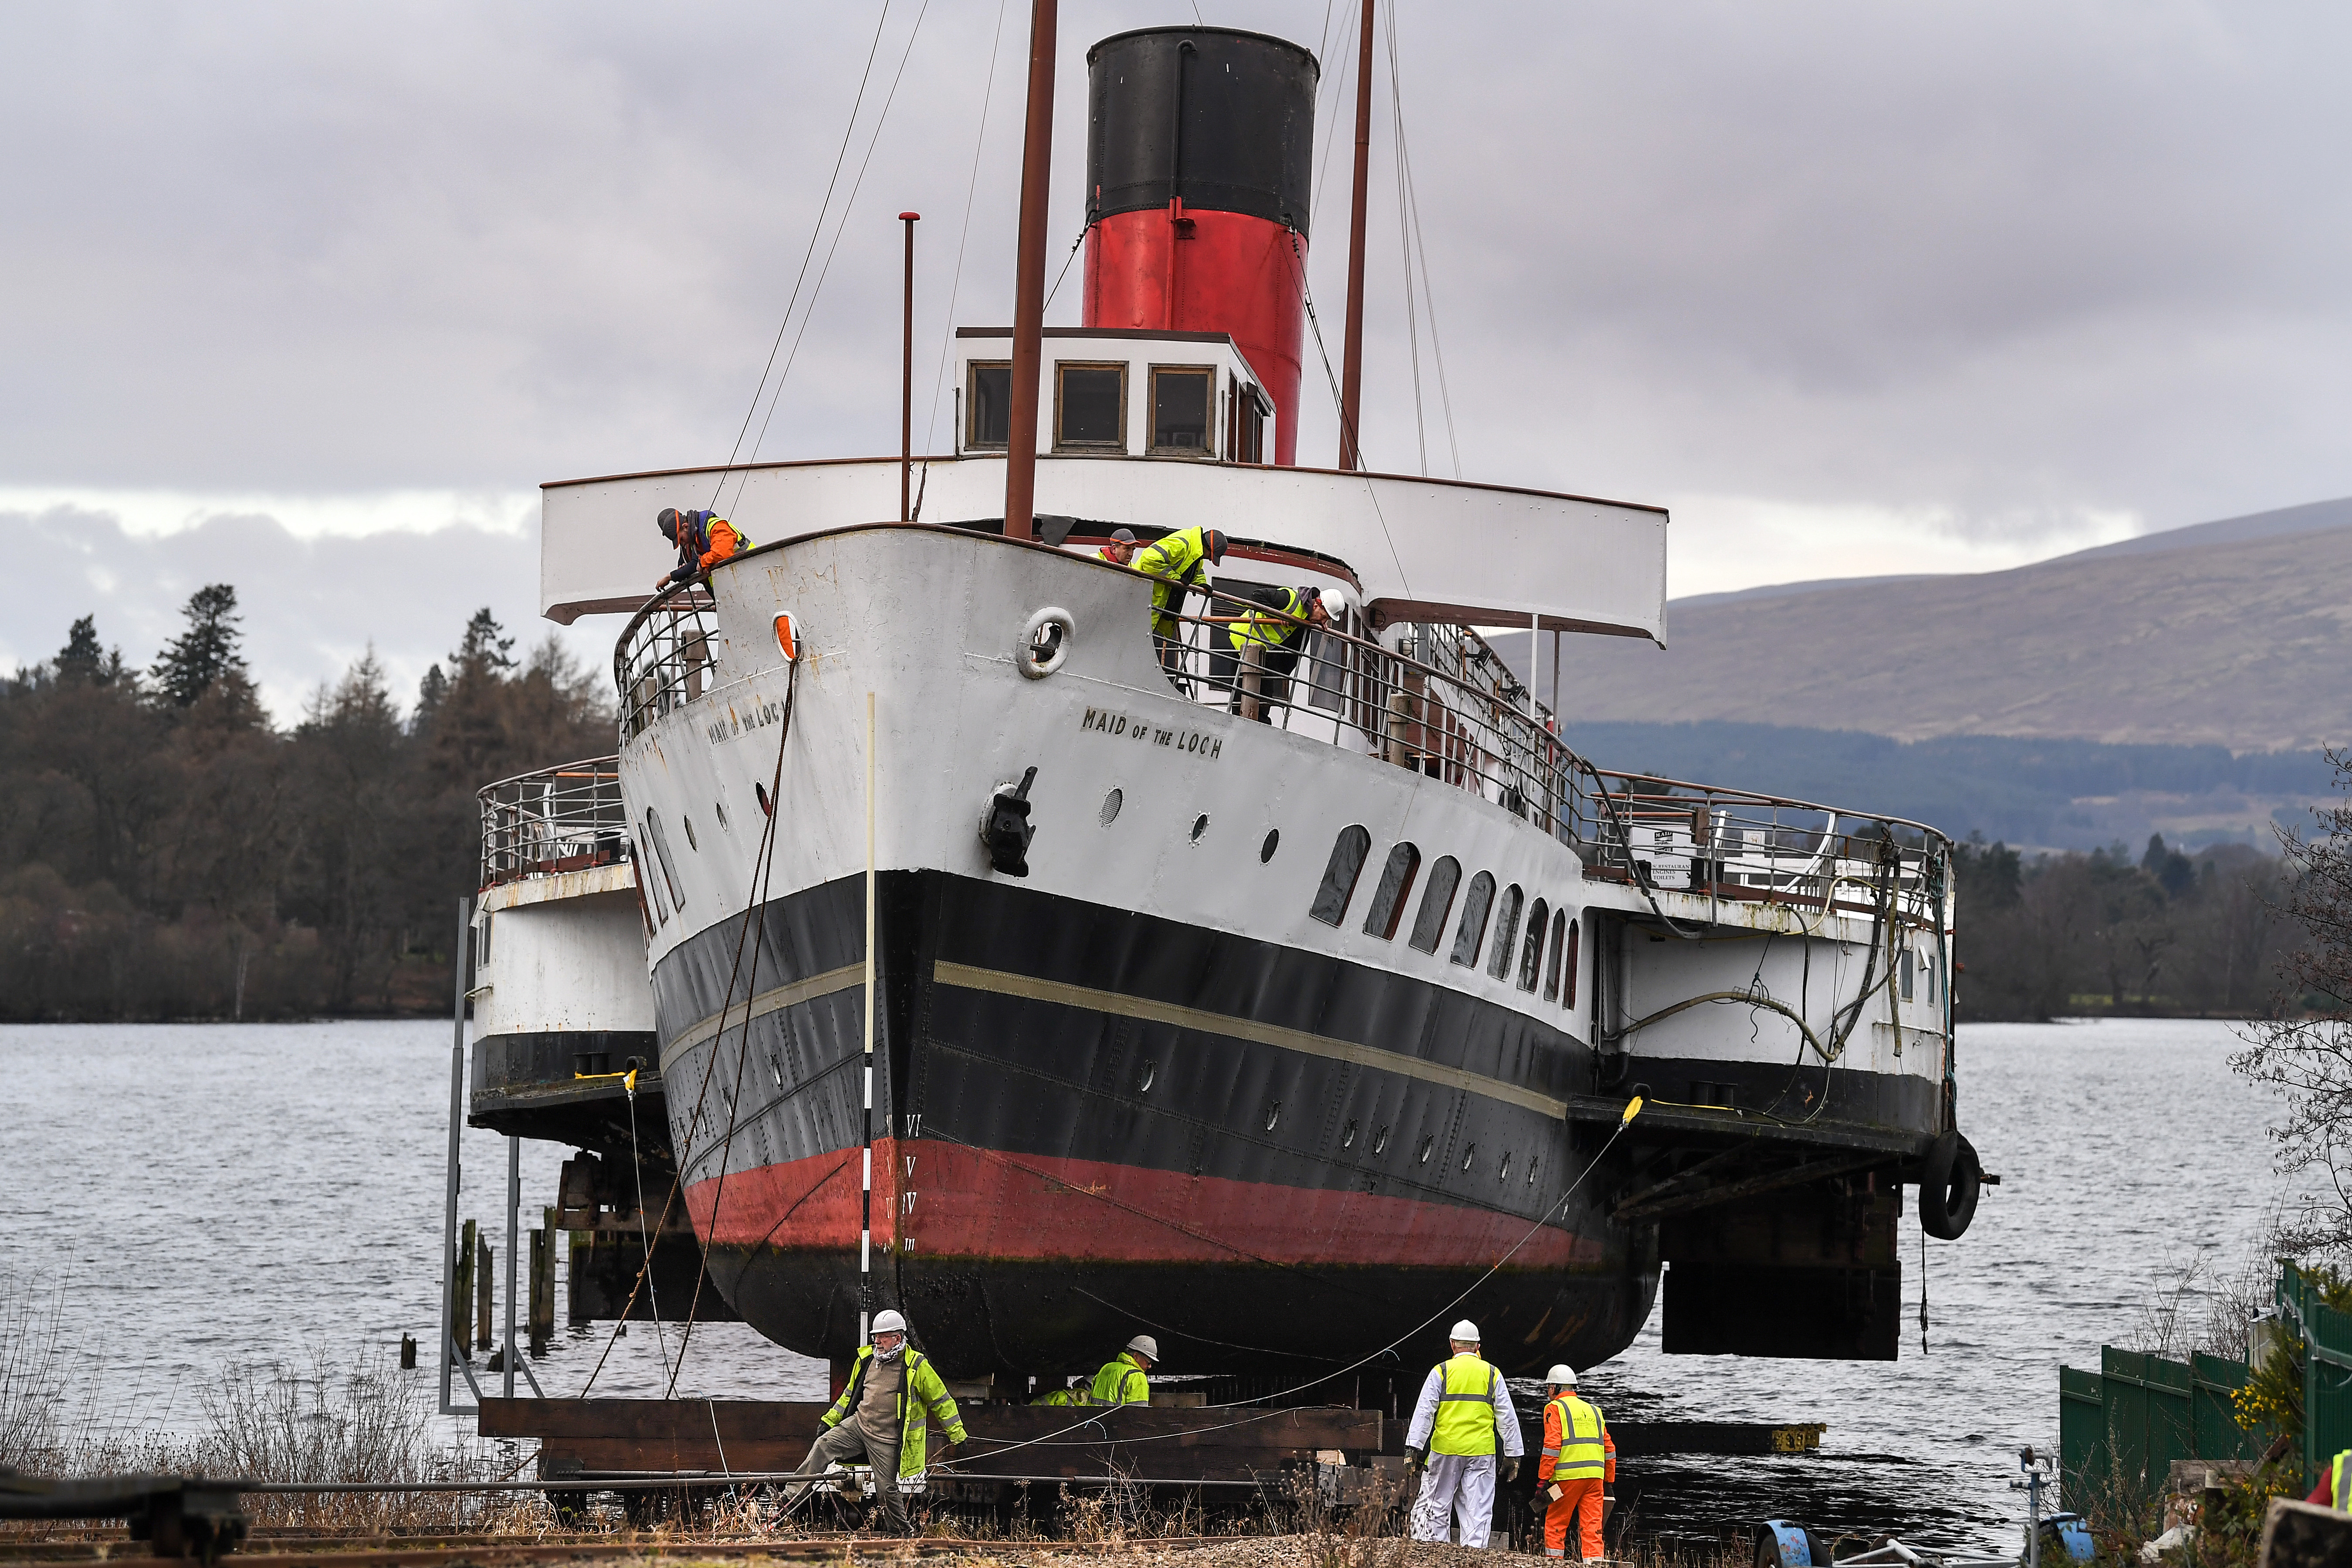 Maid of the Loch being pulled out of the water (Jeff J Mitchell/Getty Images)